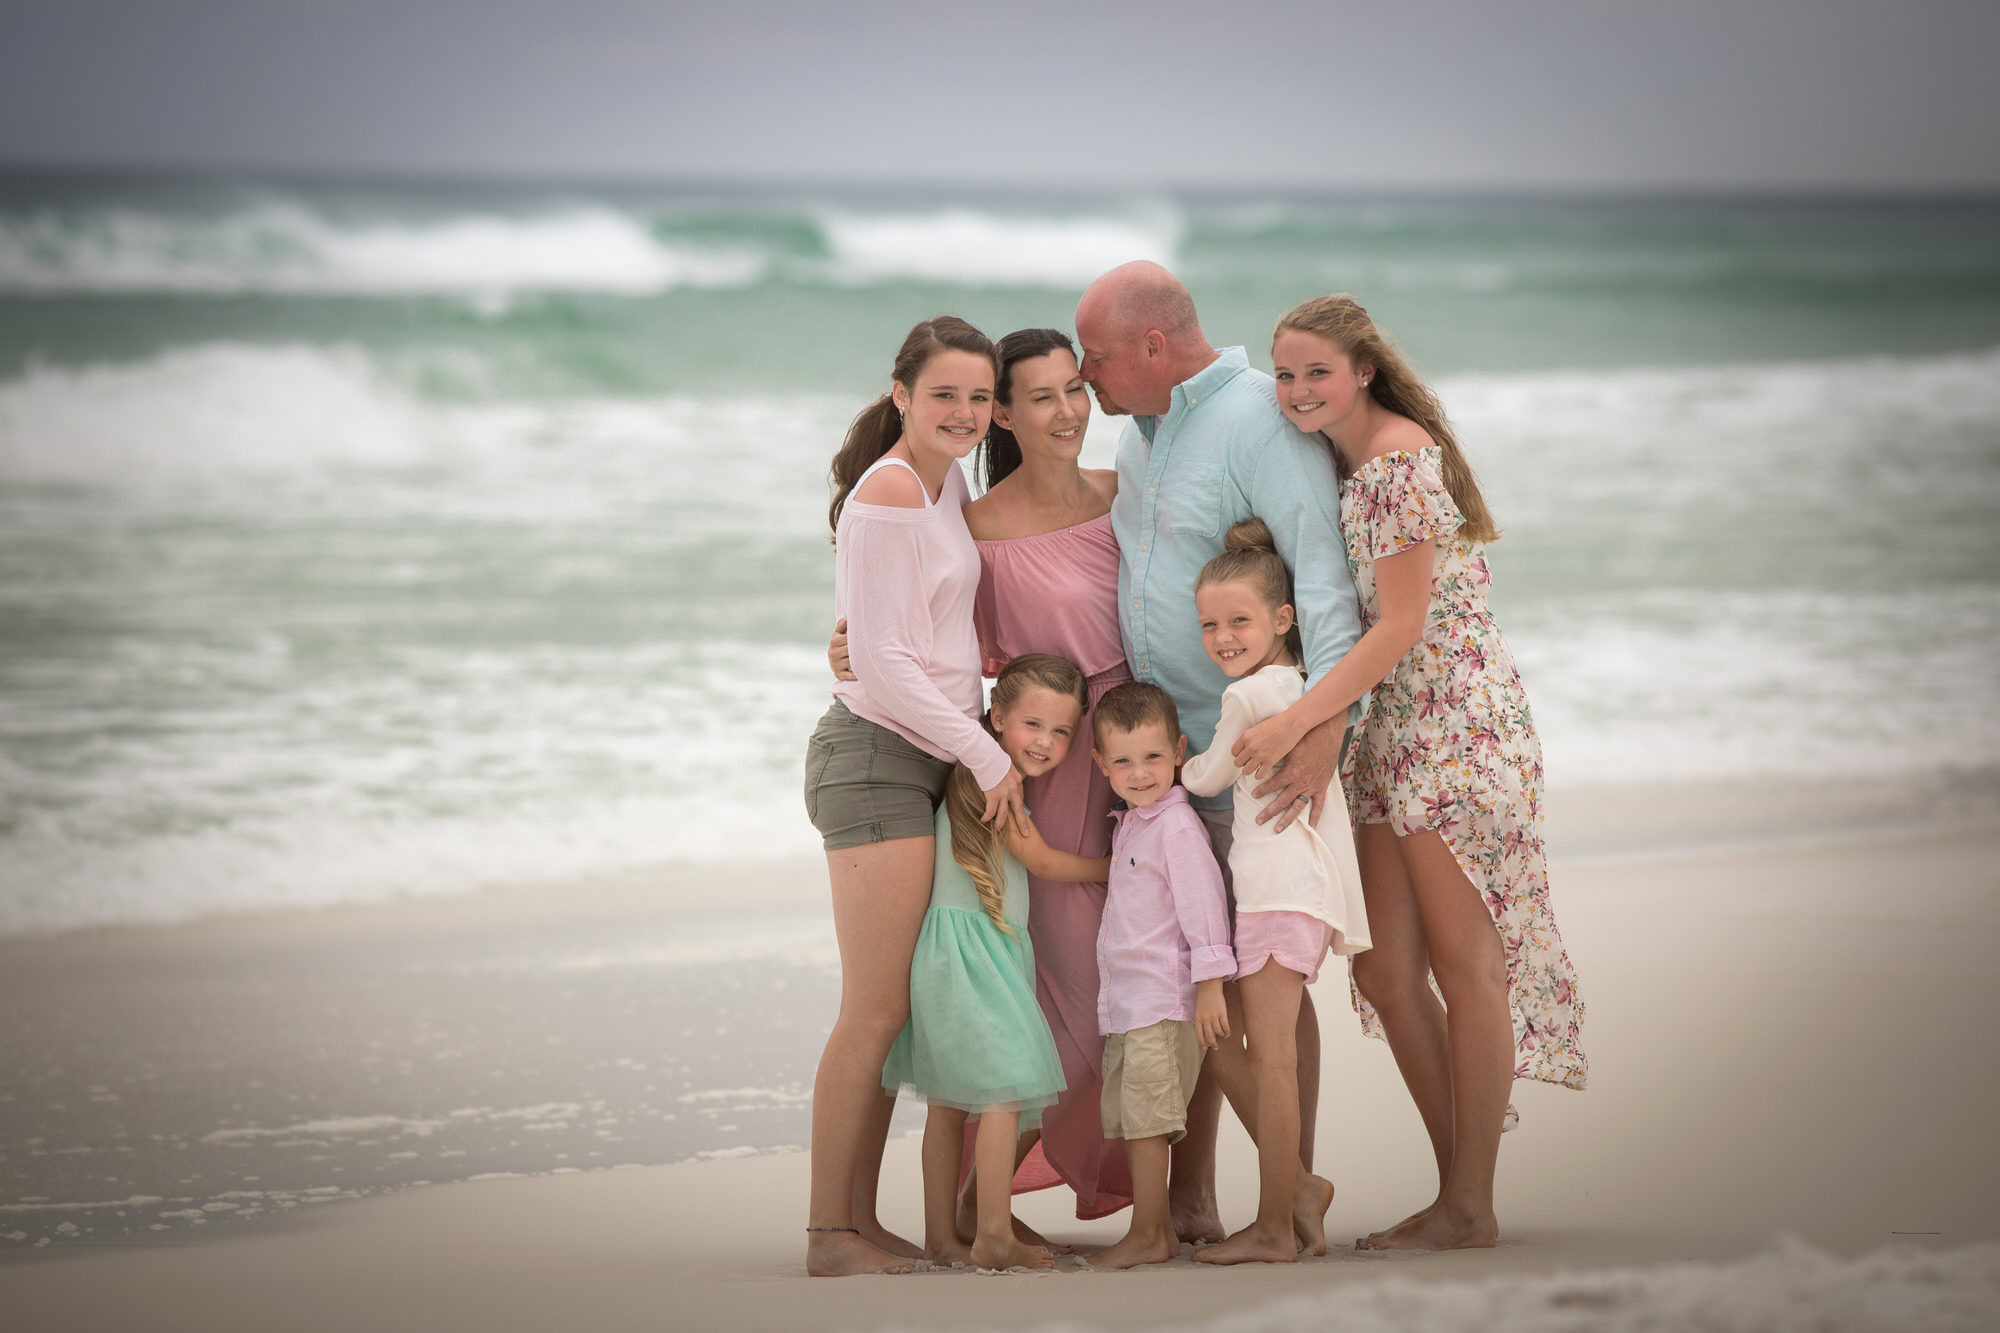 large beach family photo by Nicole Everson Photography